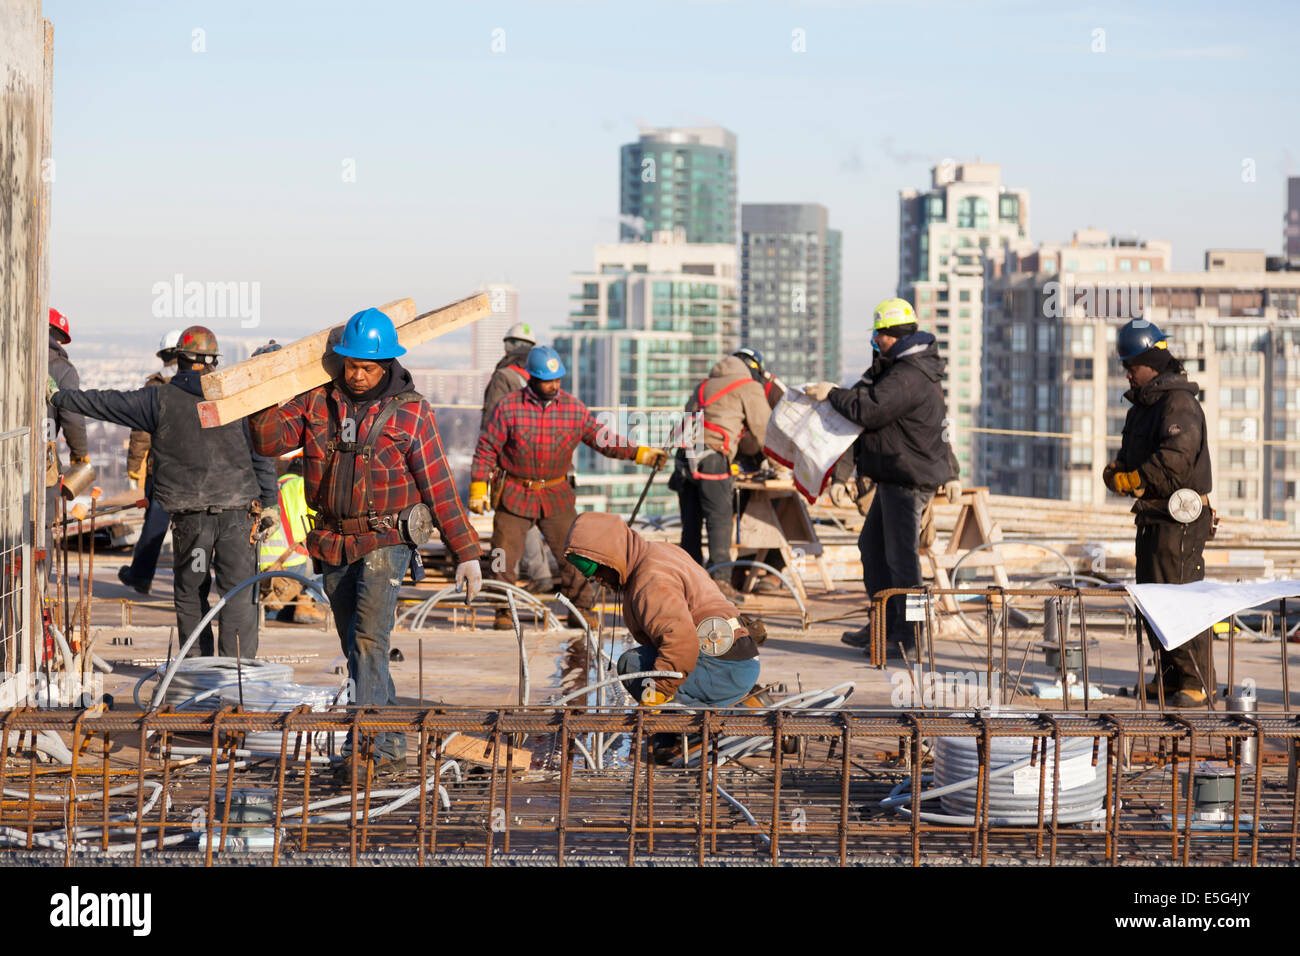 A construction worker carrying a load of lumber with other workers in the background on a rooftop construction site - Stock Image